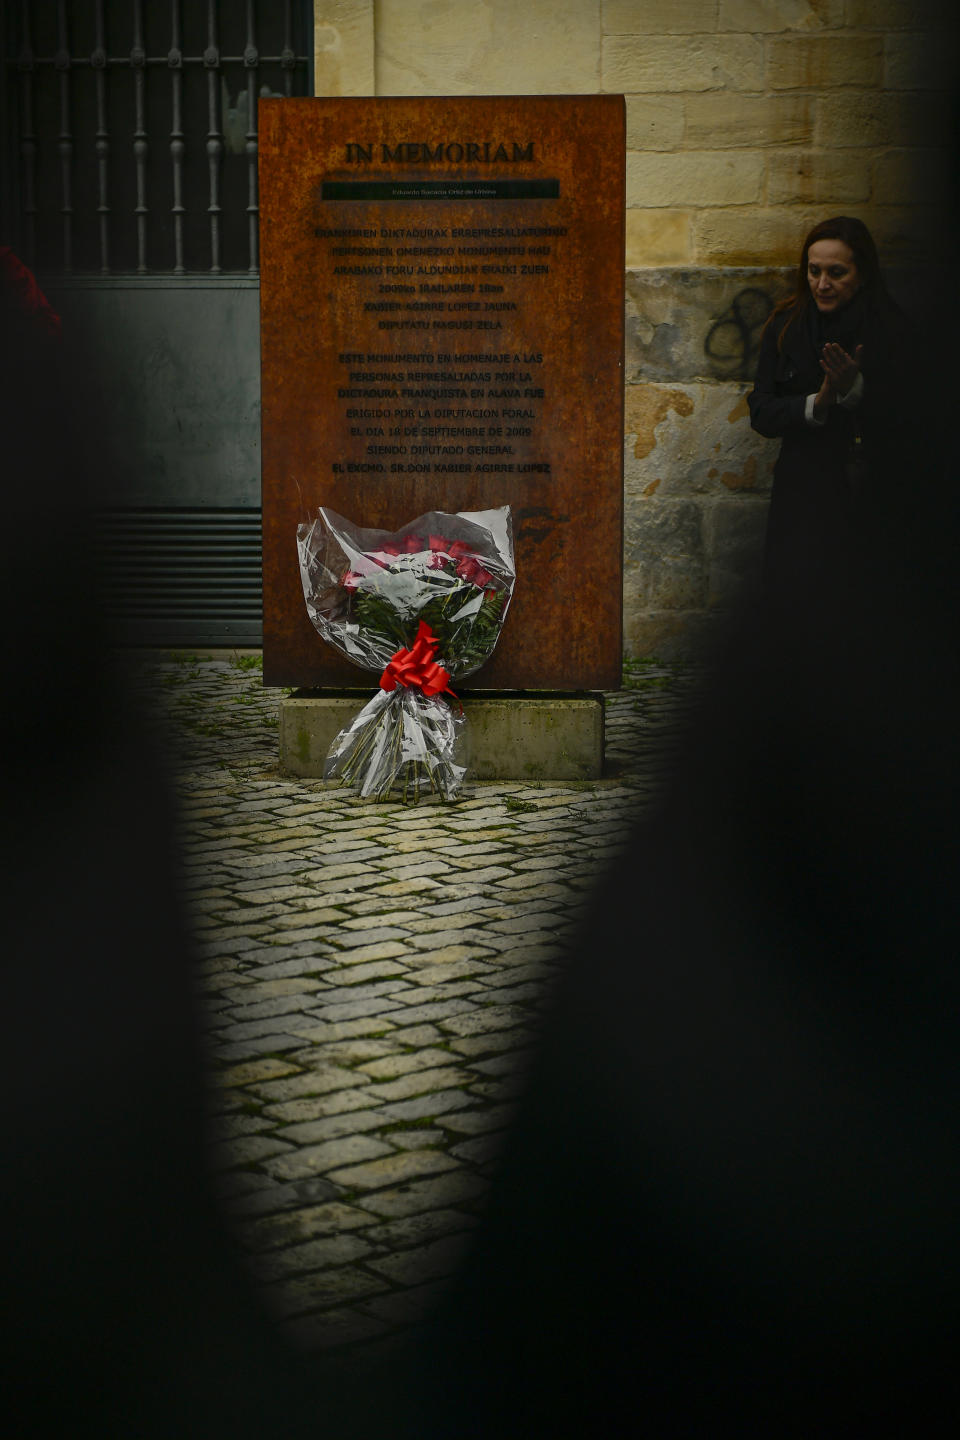 Spanish Basque socialist applauds near to a sculpture with a bunch of red roses in tribute for people killed during the Spanish Civil War, on the day that the remains of late Spanish dictator Francisco Franco are exhumed, in the basque city of Vitoria, northern Spain, Thursday, Oct. 24 2019. Forty-four years after his demise, the remains of Spanish dictator Gen. Francisco are to be dug out of his grandiose resting place outside Madrid and taken to a small family crypt, finally satisfying a long-standing demand of his victims' relatives and others who suffered under his regime. (AP Photo/Alvaro Barrientos)